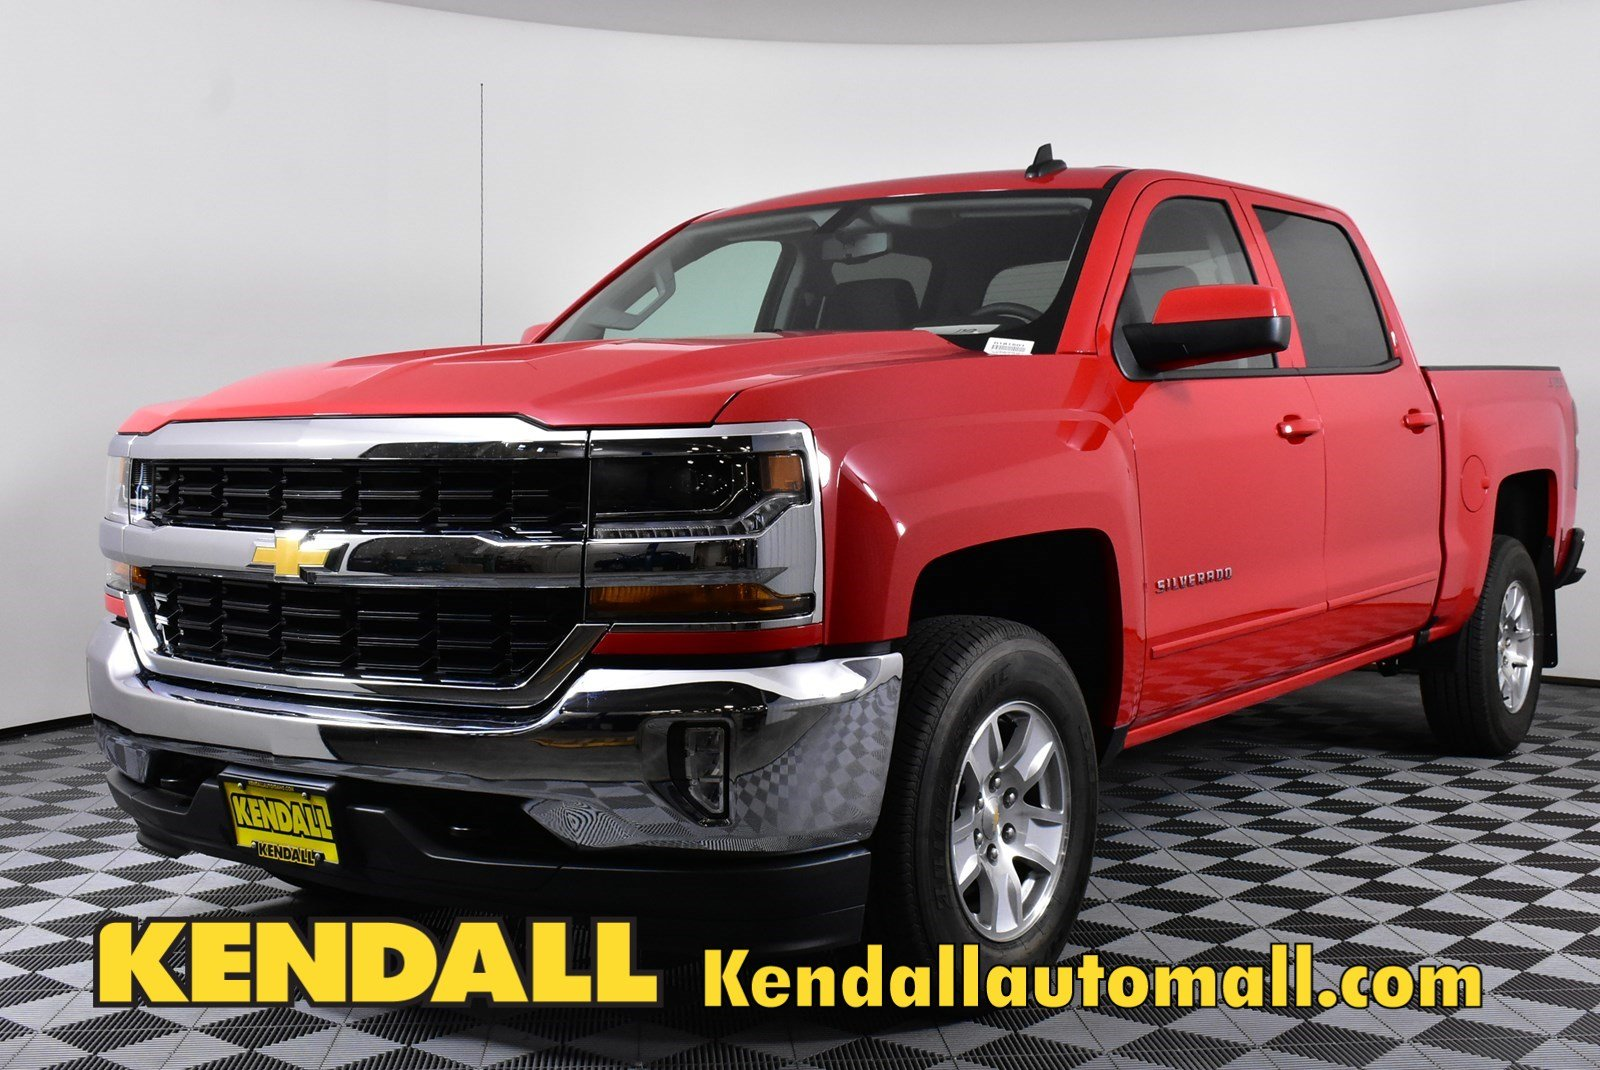 Lease a New 2018 Chevrolet Silverado 1500 Crew LT